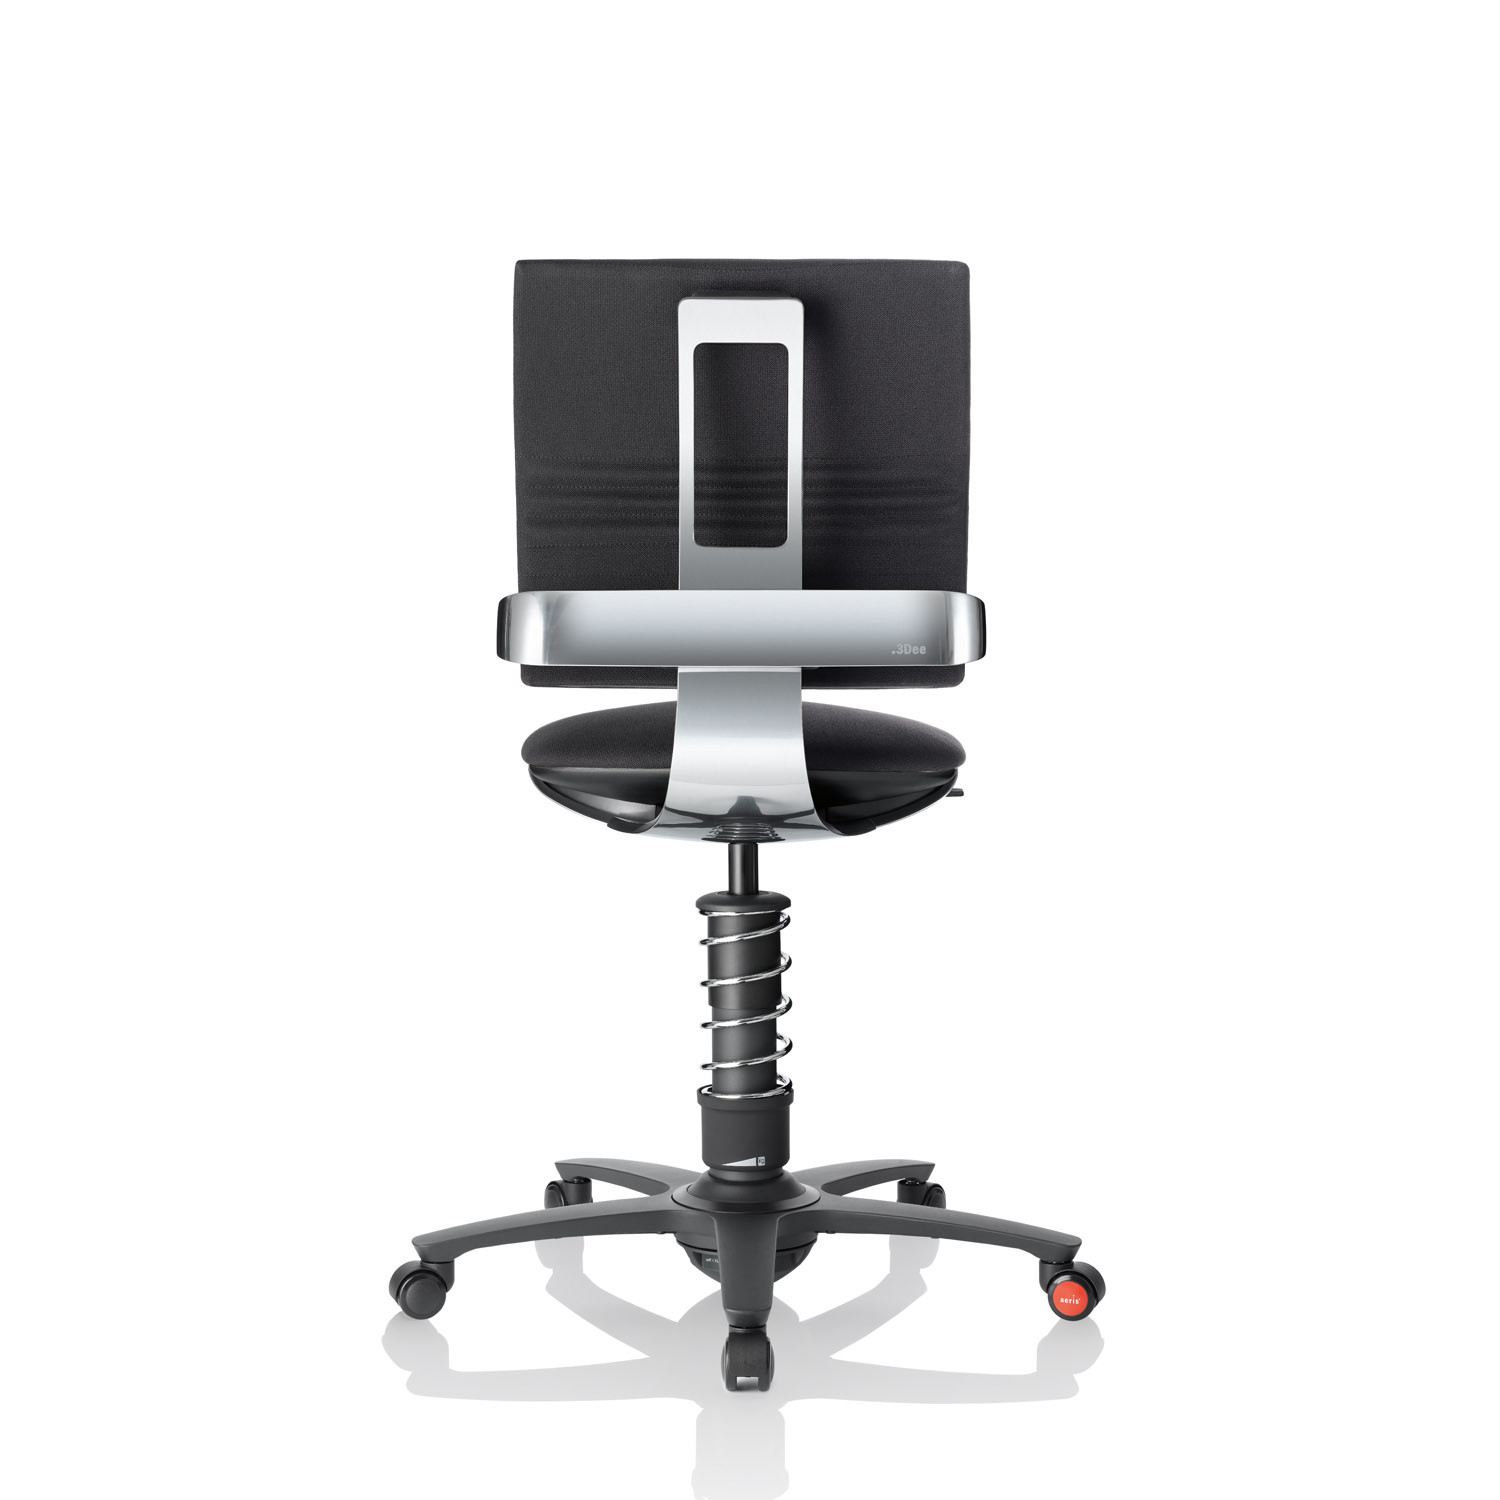 3Dee Adjustable Lumbar Support Chair